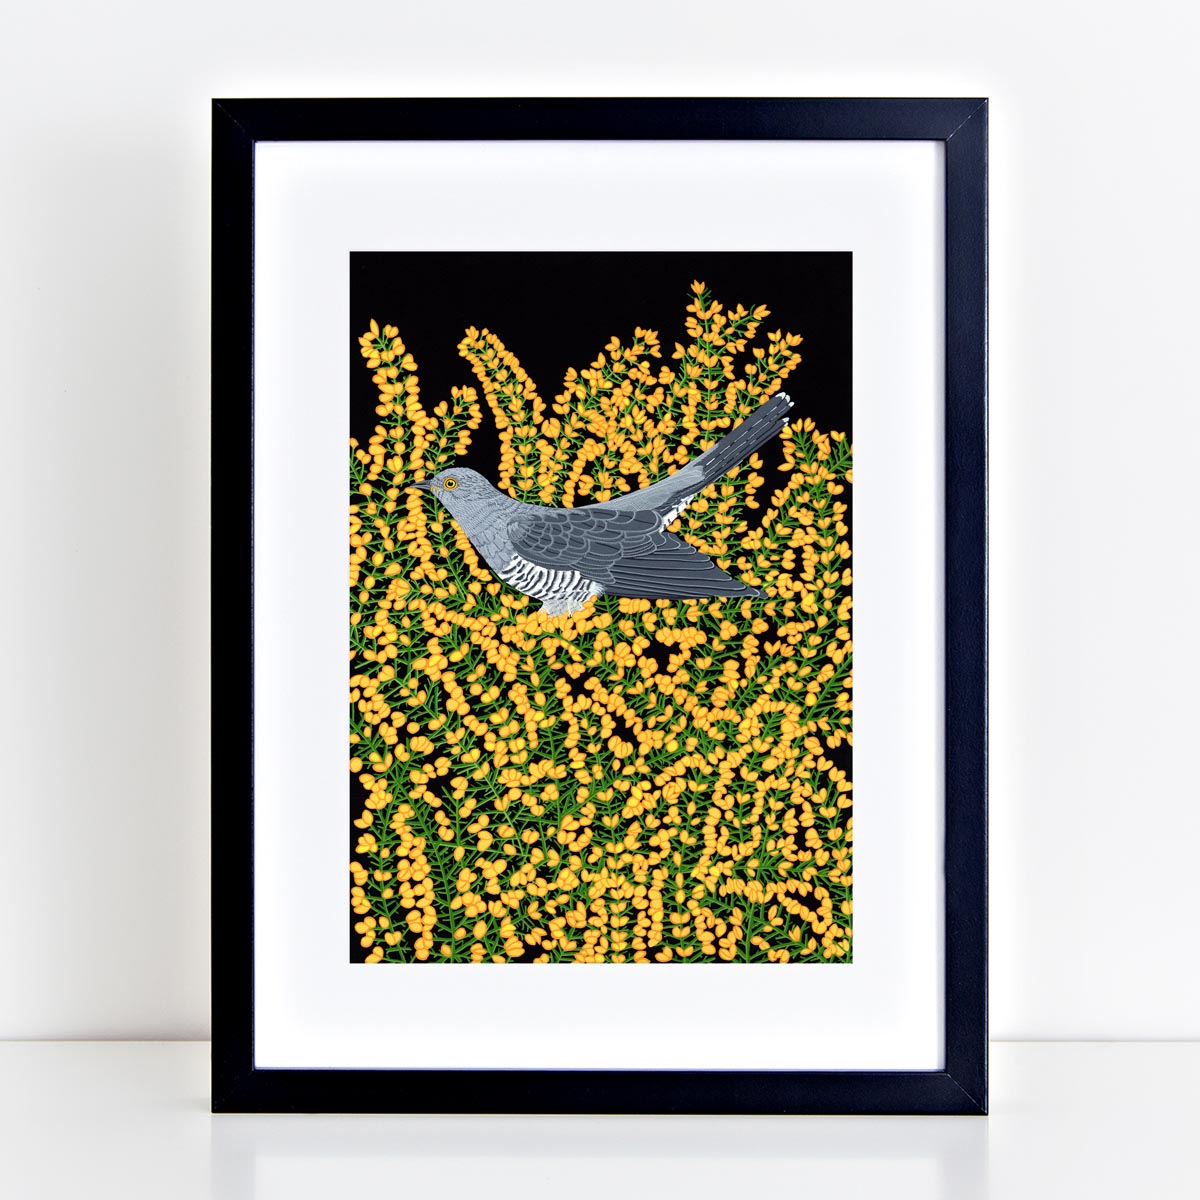 Cuckoo Print By Bird the Artist